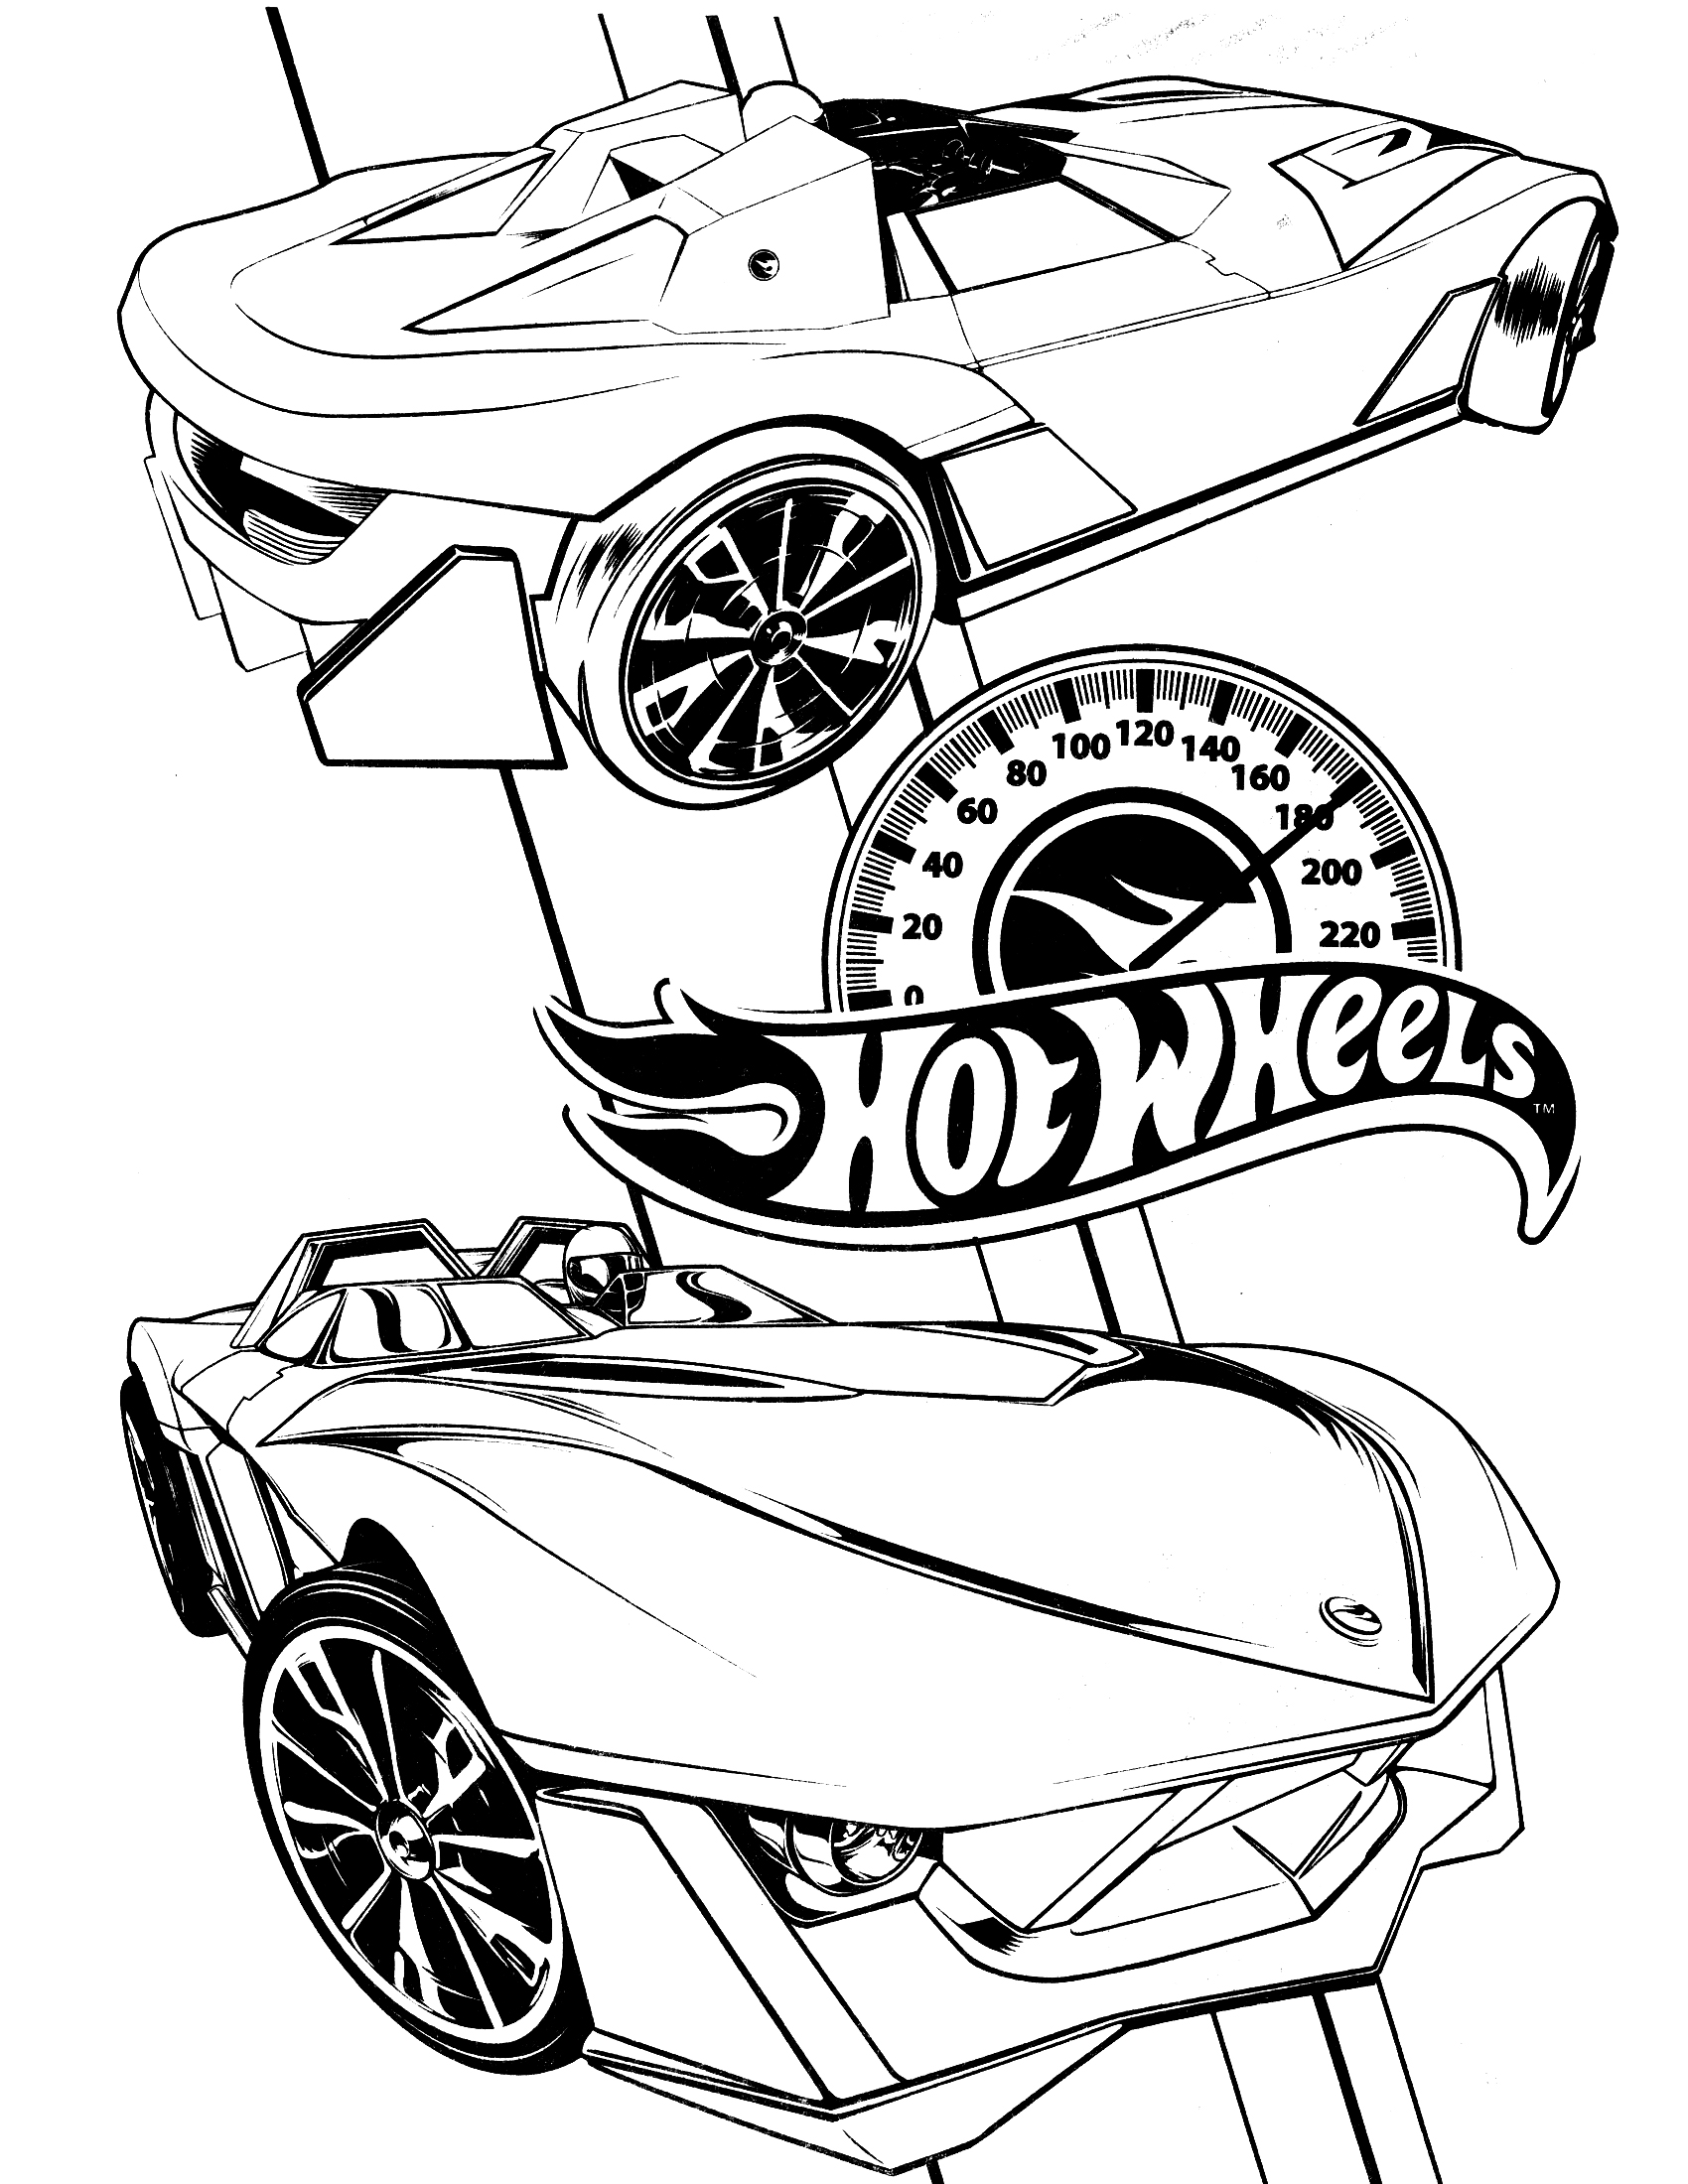 Coloring Pages To Print : Free printable hot wheels coloring pages for kids